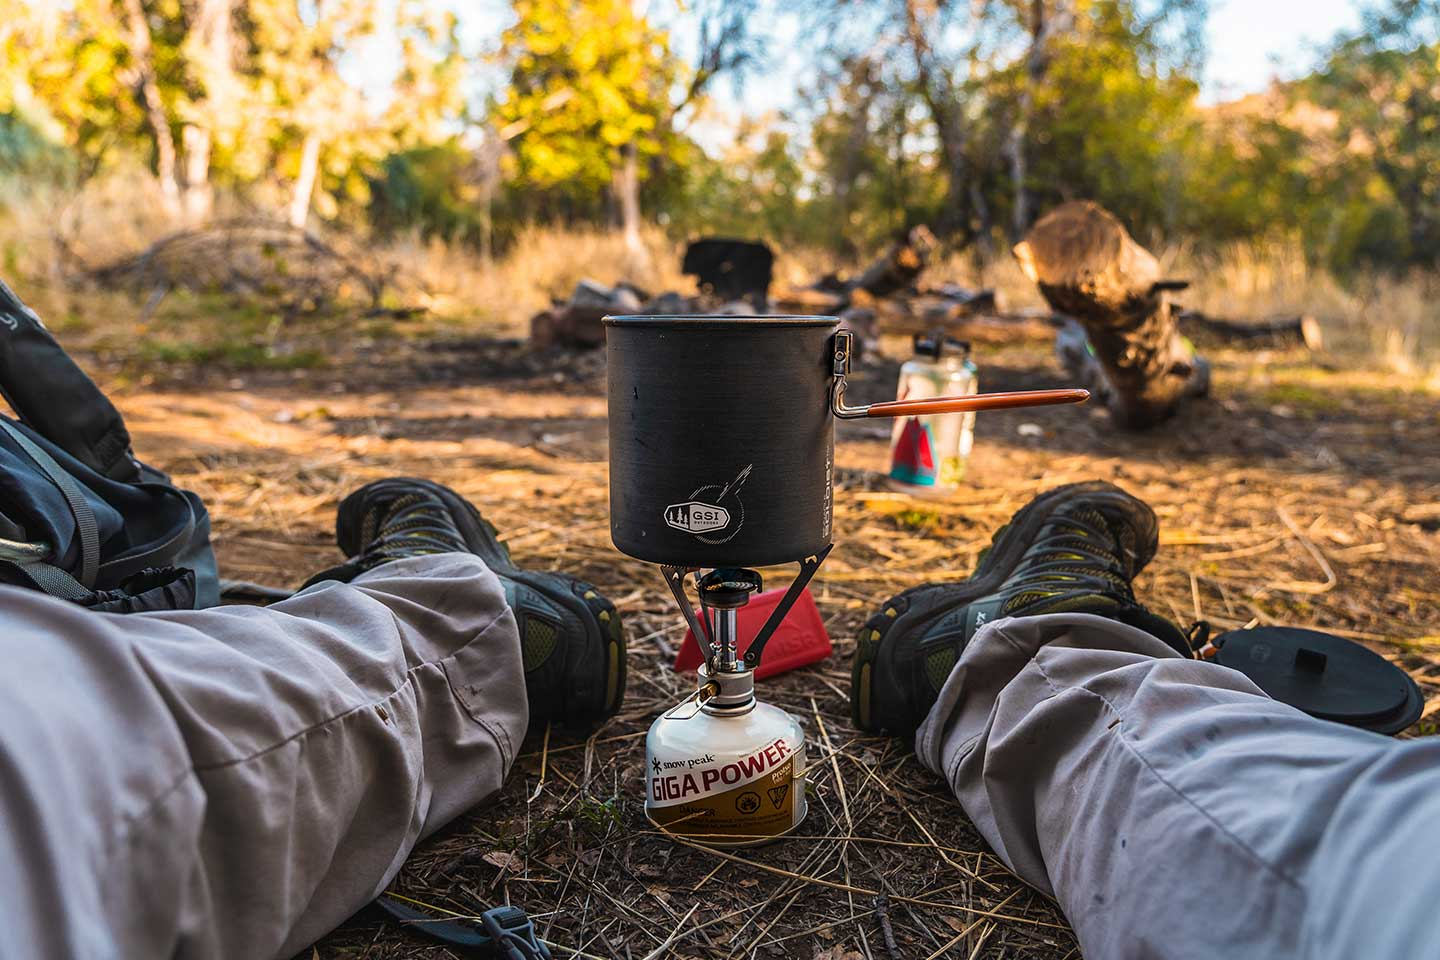 A backpacking stove cooking some vegan backpacking food with camp in the background.